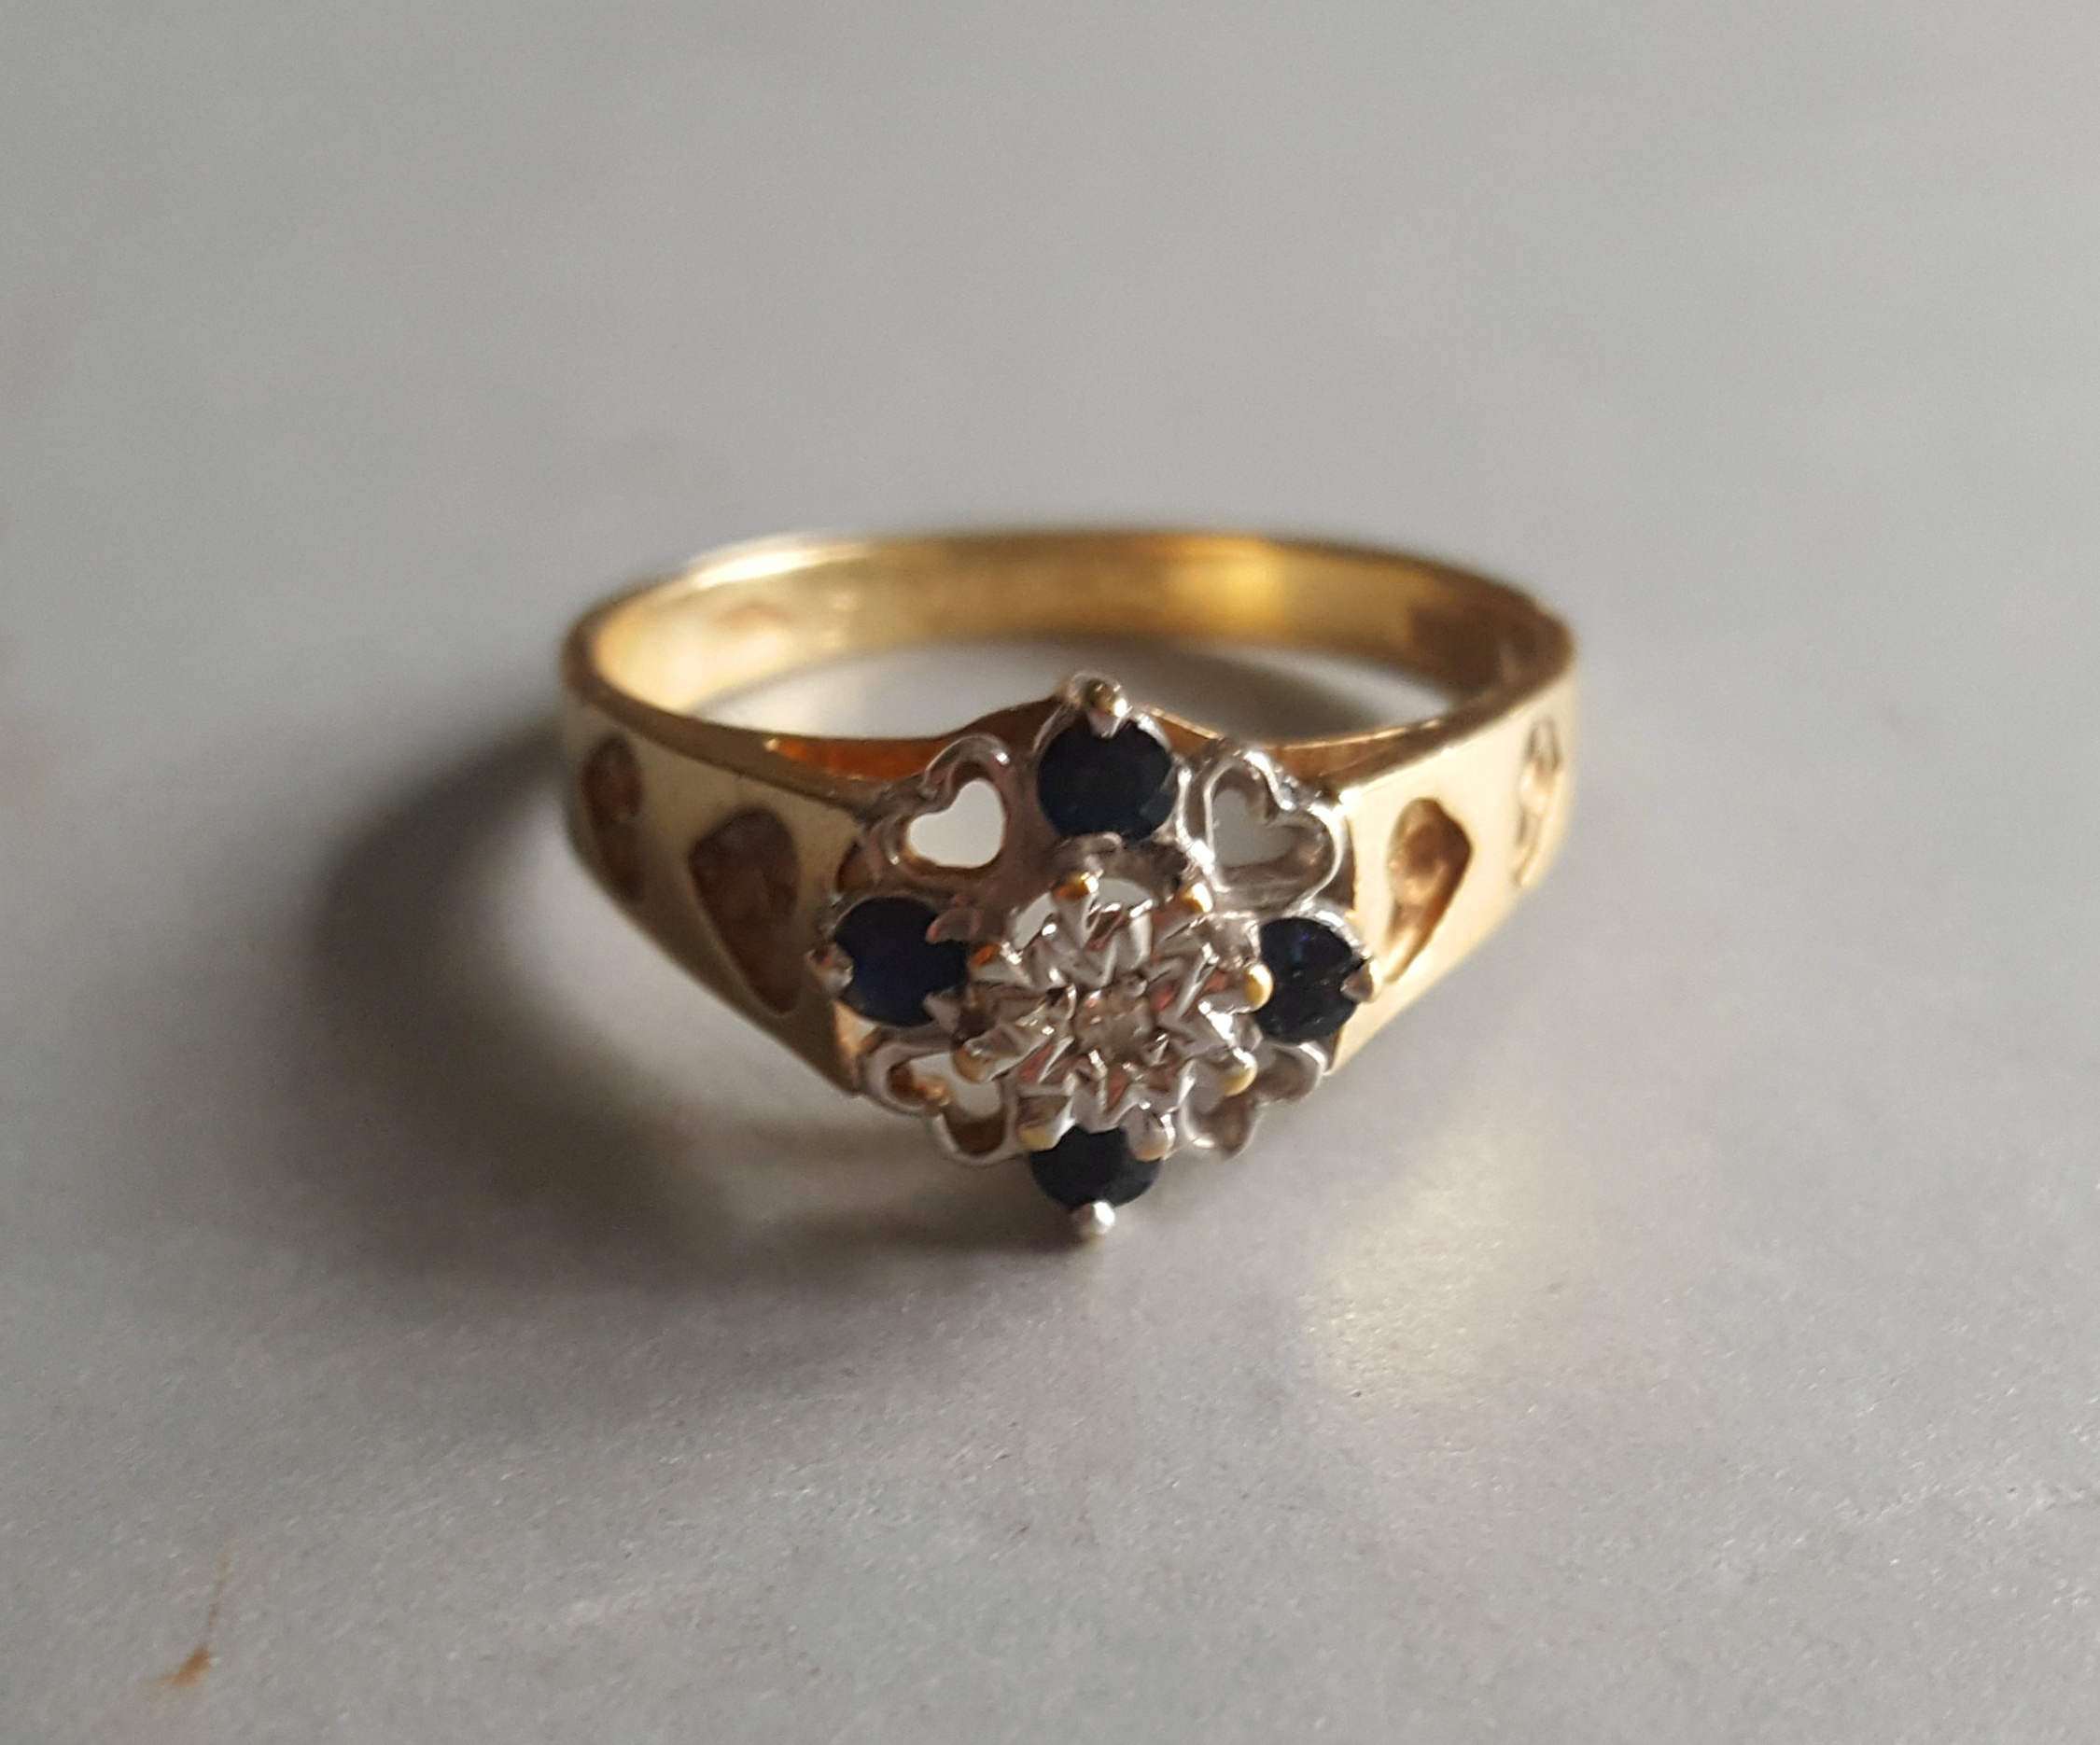 Lot 52 - Vintage 9ct Gold Diamond & Sapphire Ring Sheffield 1984 Size 'O'